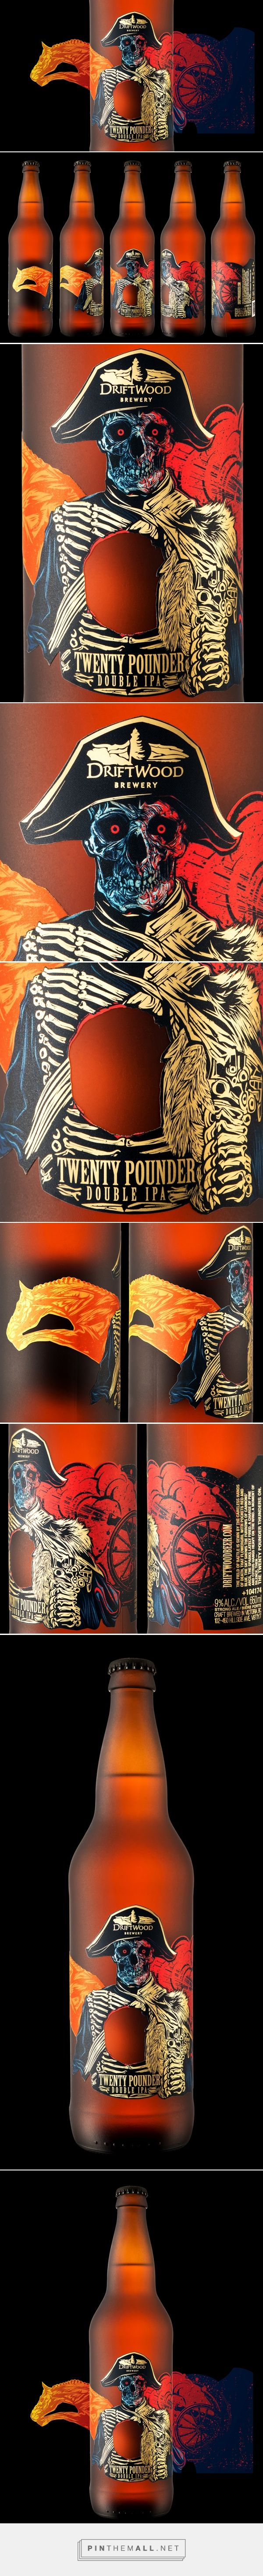 Twenty Pounder Double ‪‎IPA‬ with a hole in ‪‎label‬ - ‪#design‬ by Hired Guns Creative (‪‎Canada‬) - http://www.packagingoftheworld.com/2016/05/twenty-pounder-double-ipa.html